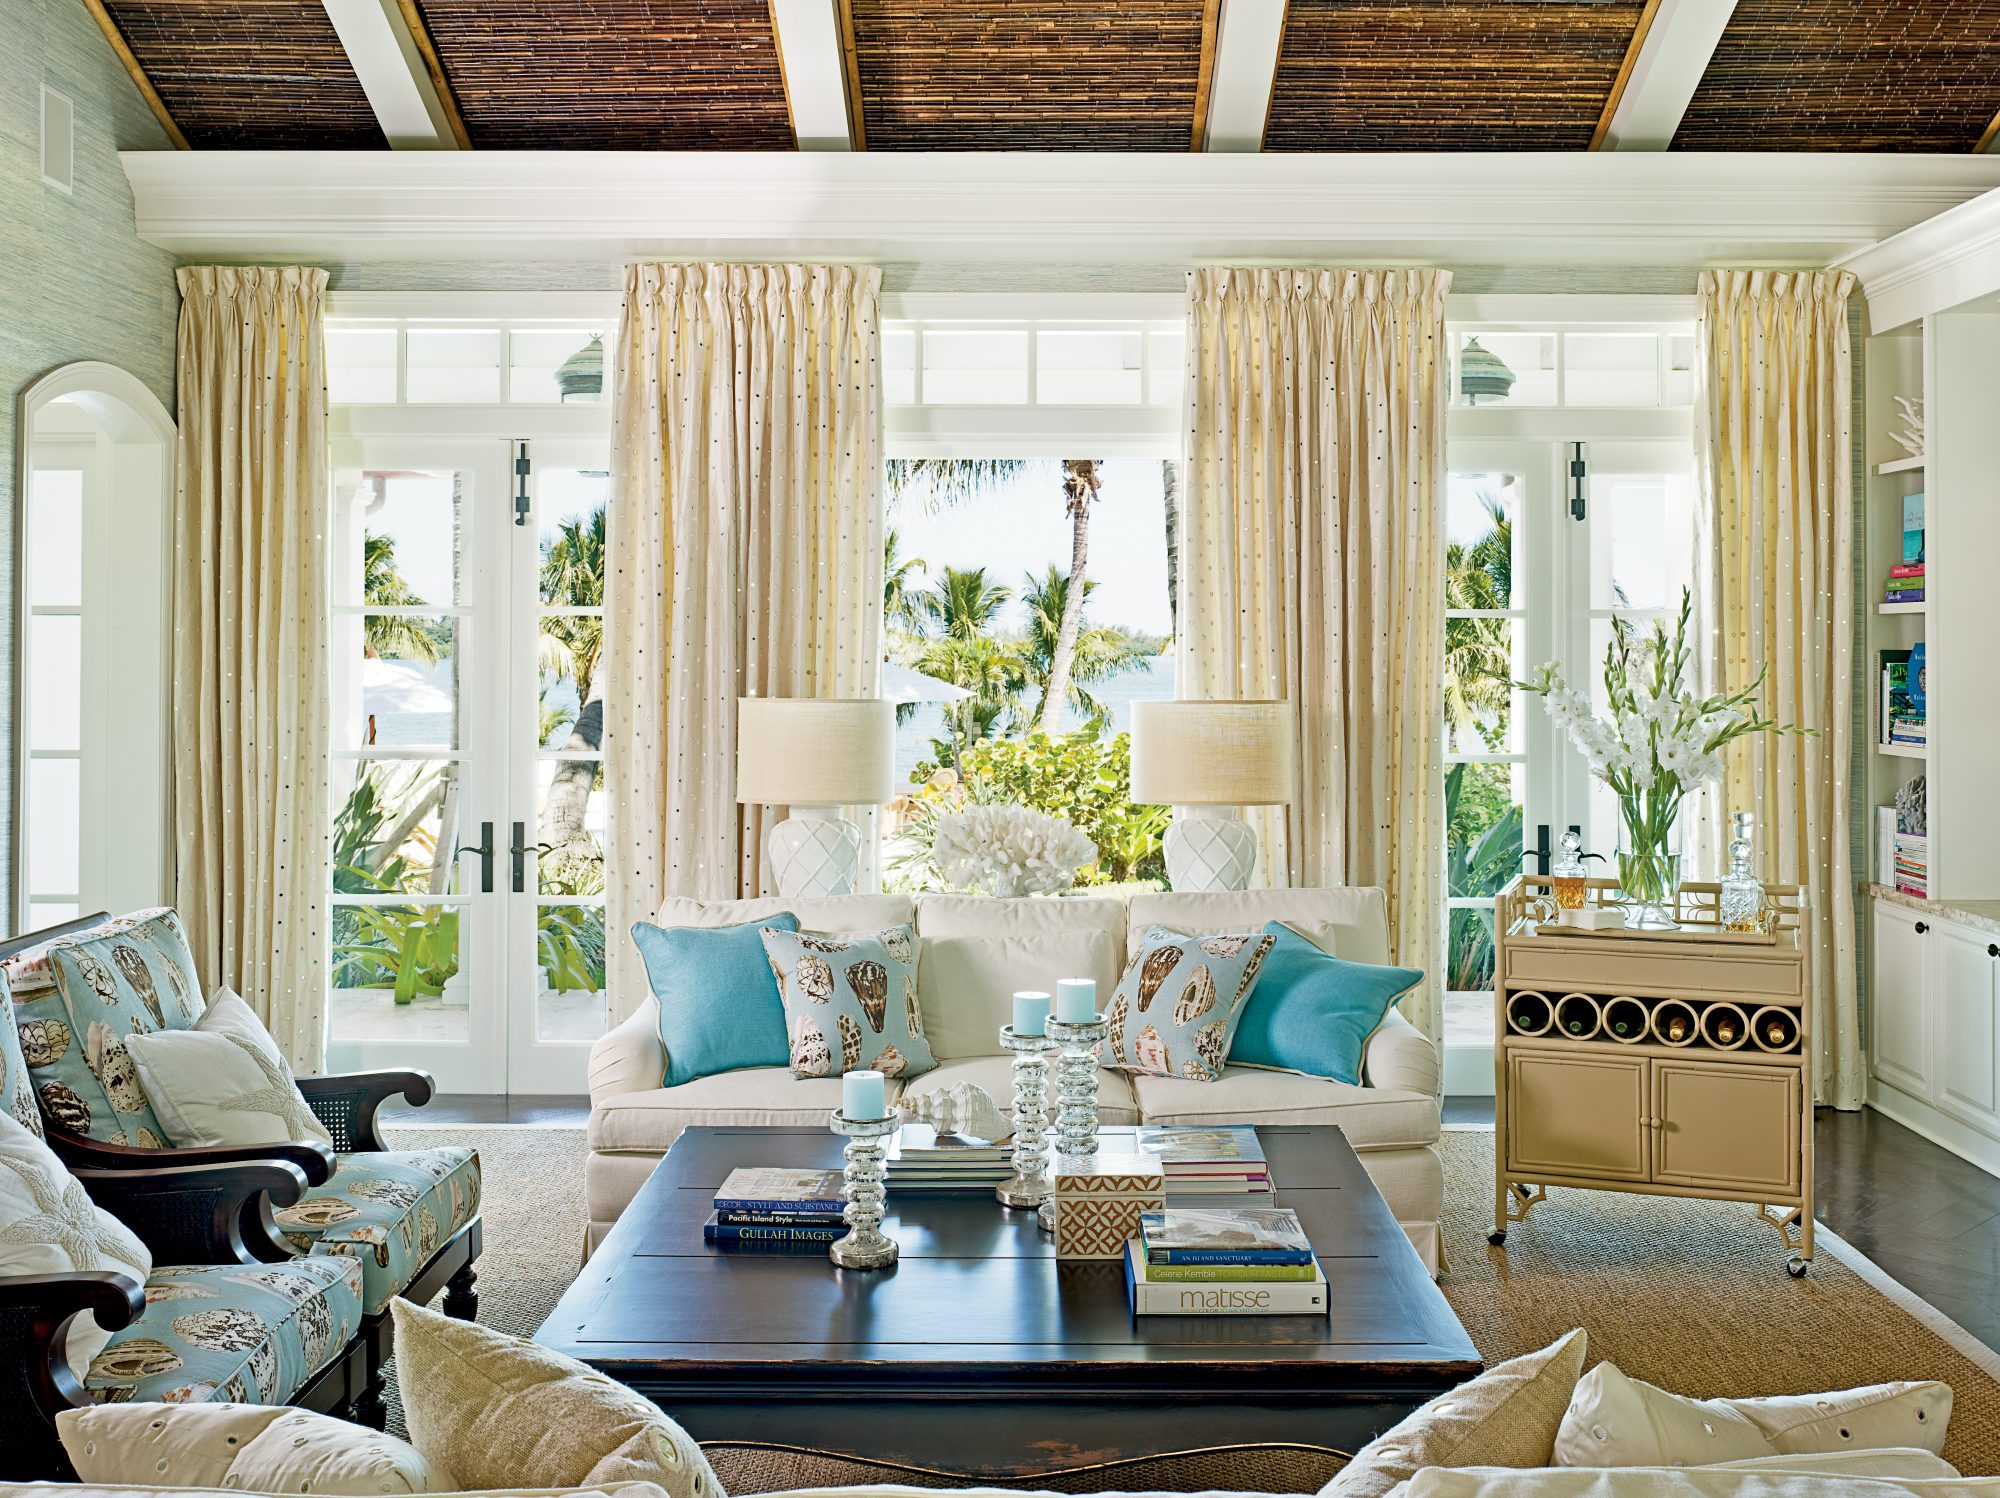 The living room features organic details such as a bamboo ceiling, grasscloth wallcovering by Phillip Jeffries Ltd., and plantation-style wood-and-rattan furnishings.